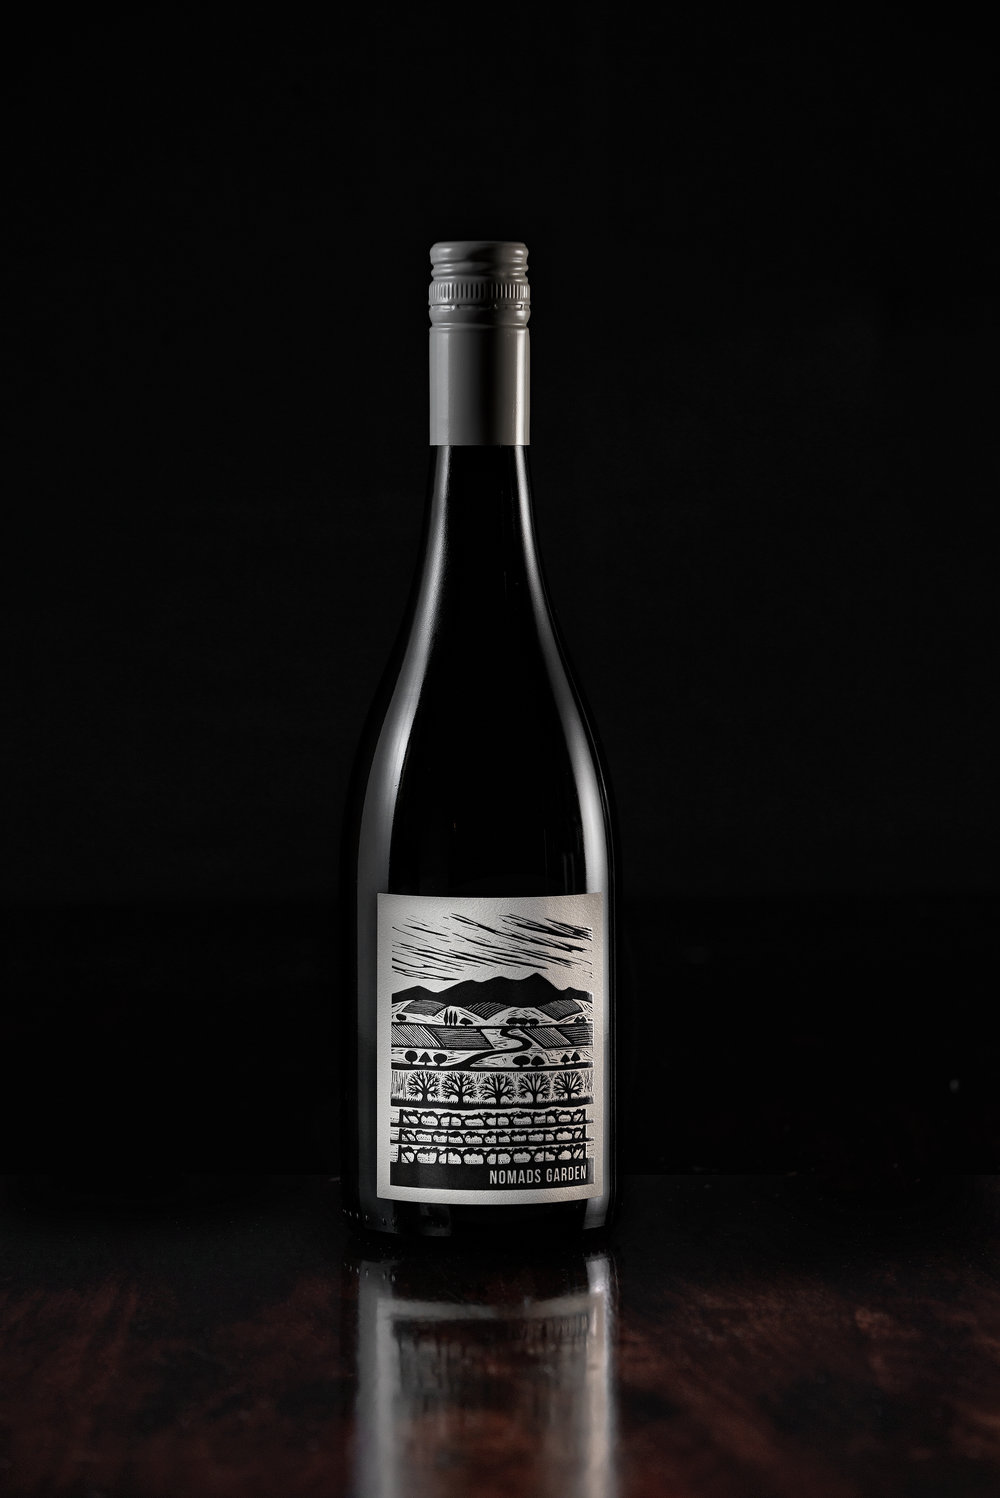 2017 Pinot Blanc - Handmade - Hand Picked - Basket Pressed - Wild Yeast FermentNo Acid Added - Barrel Aged on Lees - 36 Hours on SkinsVineyard ~ Murtagh Vineyard, King ValleySourced from a well known and well run vineyard perched on the side of a mountain well up from the valley floor and thus cooler, vital for maintaining natural acidity. This vineyard predominantly grows better known varieties, when we discovered there were a few rows of the little known Pinot Blanc we thought what the heck and took 1.5 tonnes to experiment with.As with all wines released under the Nomads Garden range input from us in the winery was kept to an absolute minimum. Instead careful attention was paid to working closely with Pat the grower and ensuring the grapes were picked at exactly the right moment to ensure the natural pH and the flavours were just right.Once handpicked and in the winery one half of the fruit was crushed and then gently whole bunch pressed in our wooden basket press directly to seasoned 5 year old French Oak. The second half was destemmed and crushed then allowed to remain on skins for 36 hours at which point fermentation had already commenced, then pressed to 5 year old oak. Oak of this age will impart very little, if any oak characteristics instead we believe they are the best vessel for wines to ferment and age in. Oak is a natural product that allows the wines breath and evolve with time, something not possible with tanks. Once the juice was in barrel it was protected with CO2 until the natural yeast indigenous to vineyard took hold and begun the fermentation process, when using natural yeast we expect fermentation to begin with 3-5 days of crushing. Ferments were temperature controlled in our barrel room to stay at approximately 24 degrees Celsius to retain aromatics. Once fermentation was complete the Pinot Blanc was allowed 12 months to rest in barrel on its lees (lees are the solids that drop and of the wine post fermentation) to create texture. The wines a